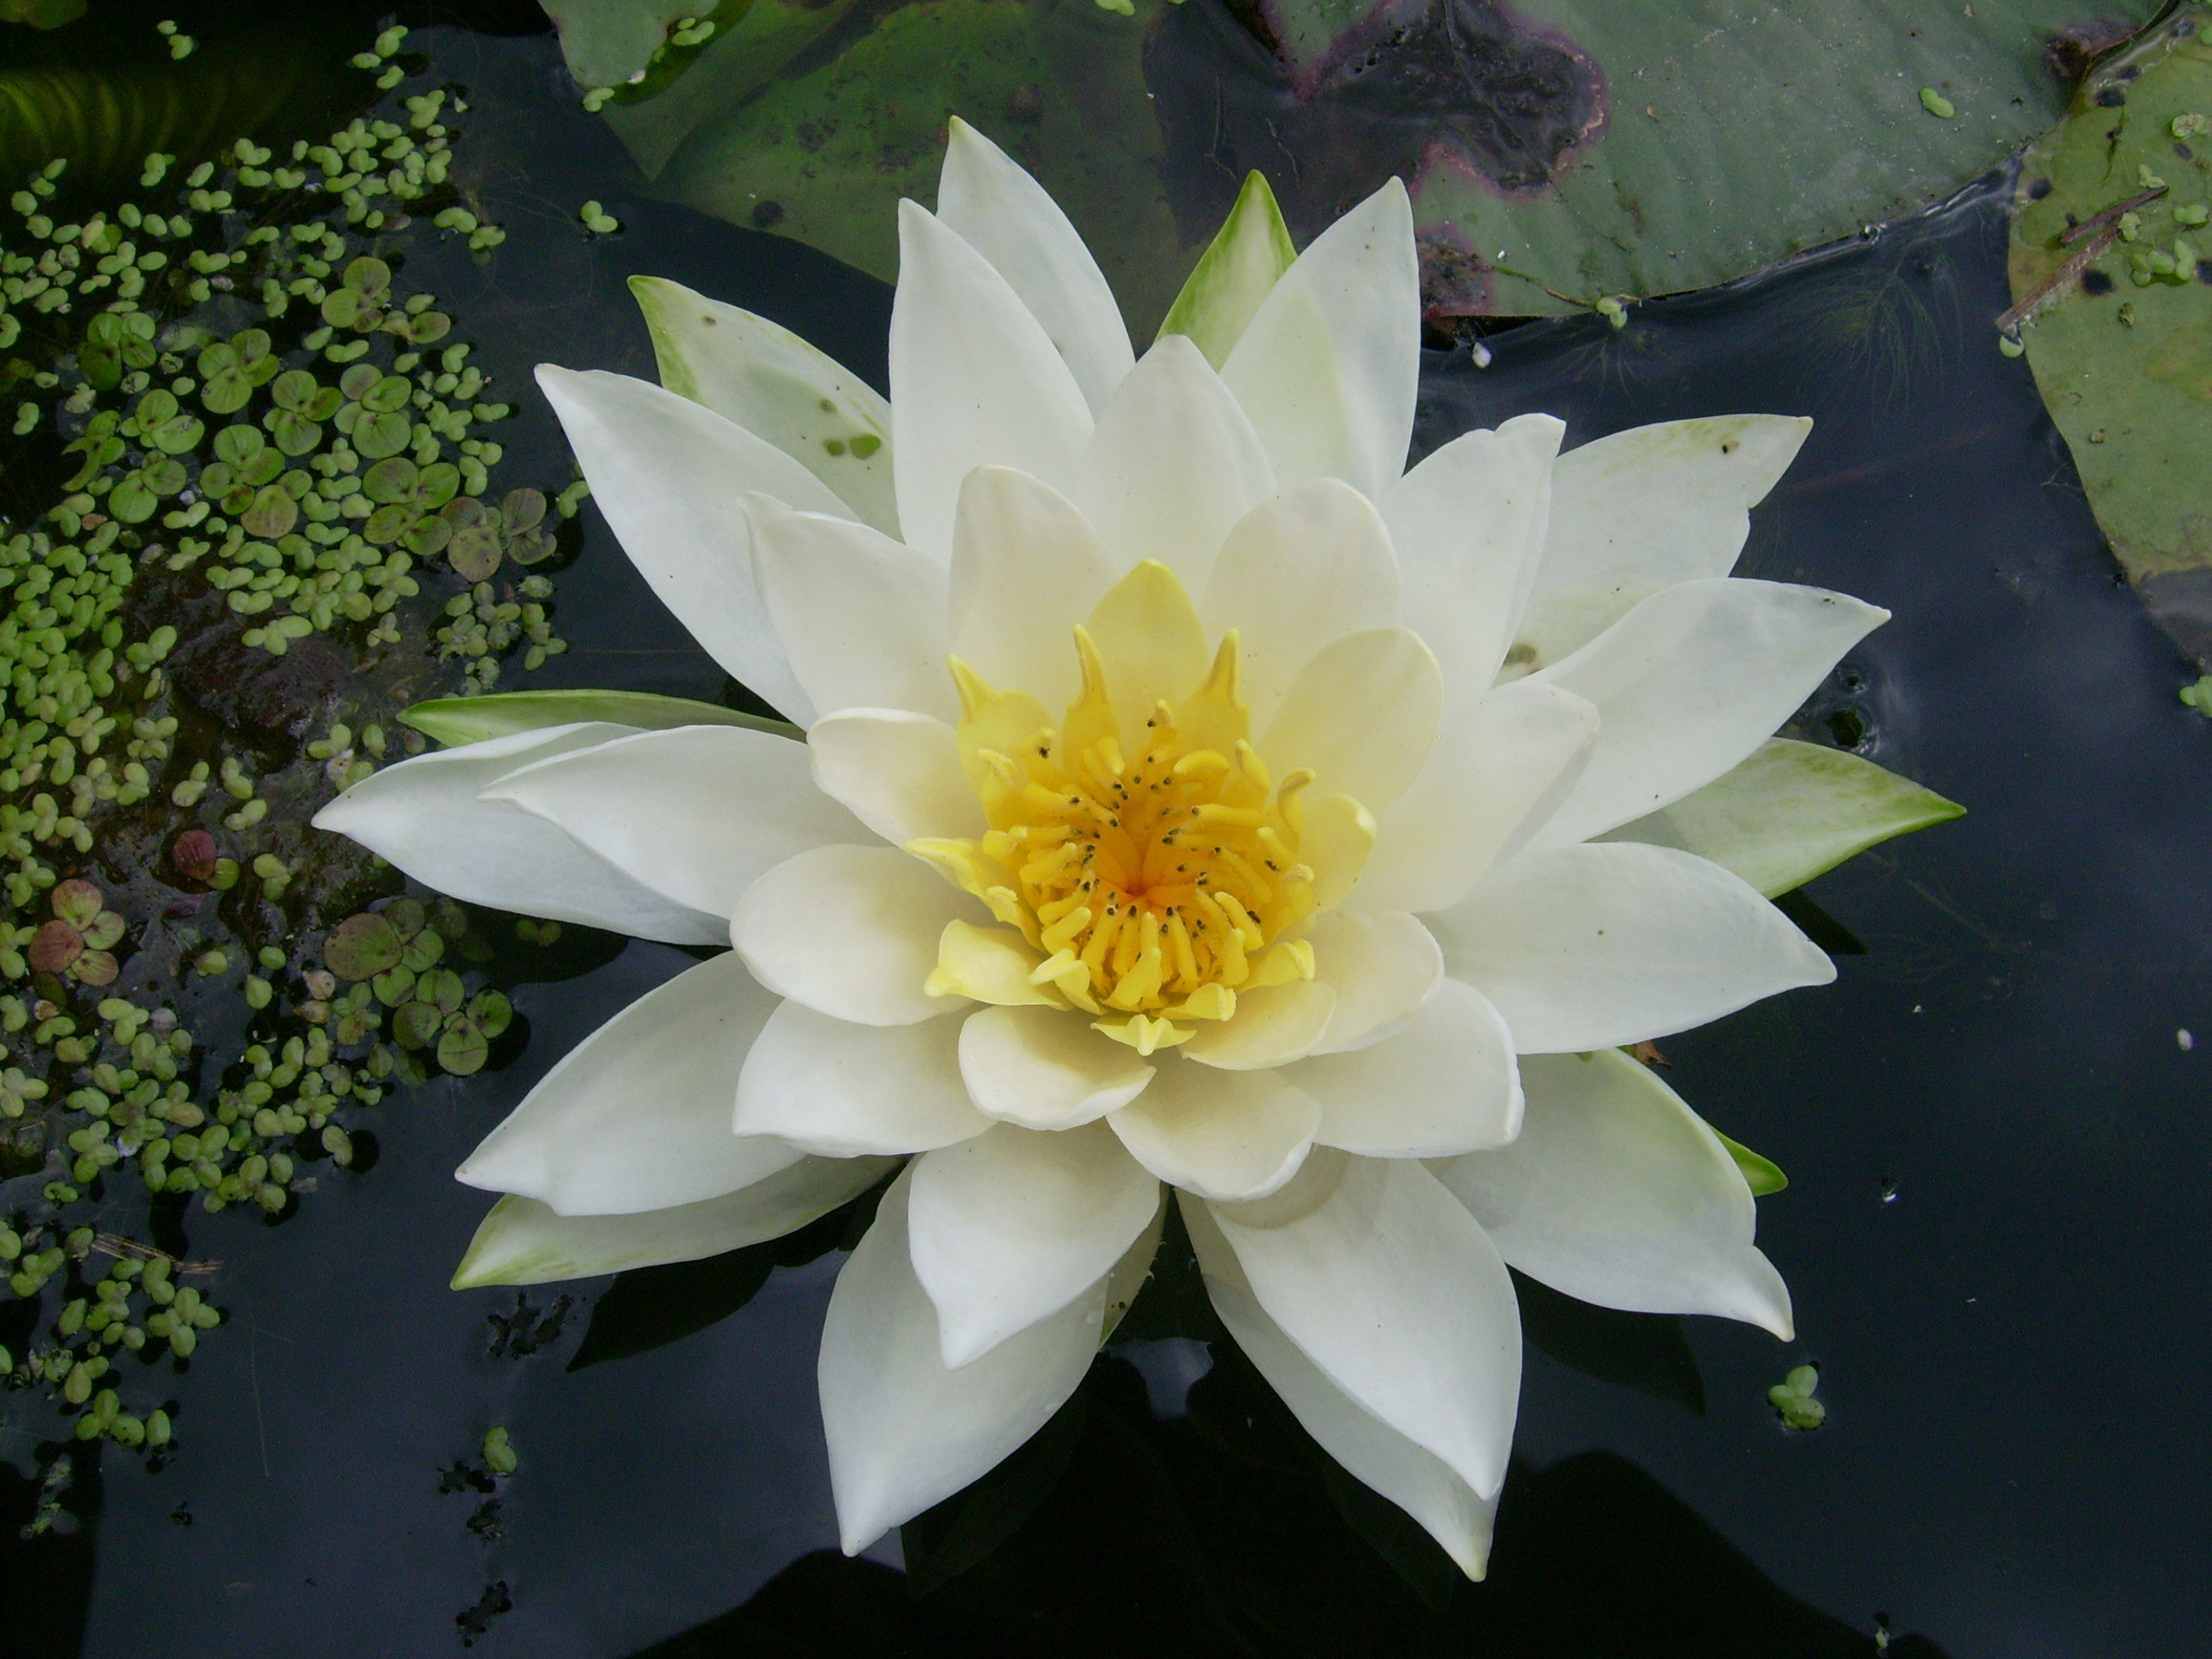 Filefragrant white water lily flower desbarats r 2g filefragrant white water lily flower desbarats r 2g izmirmasajfo